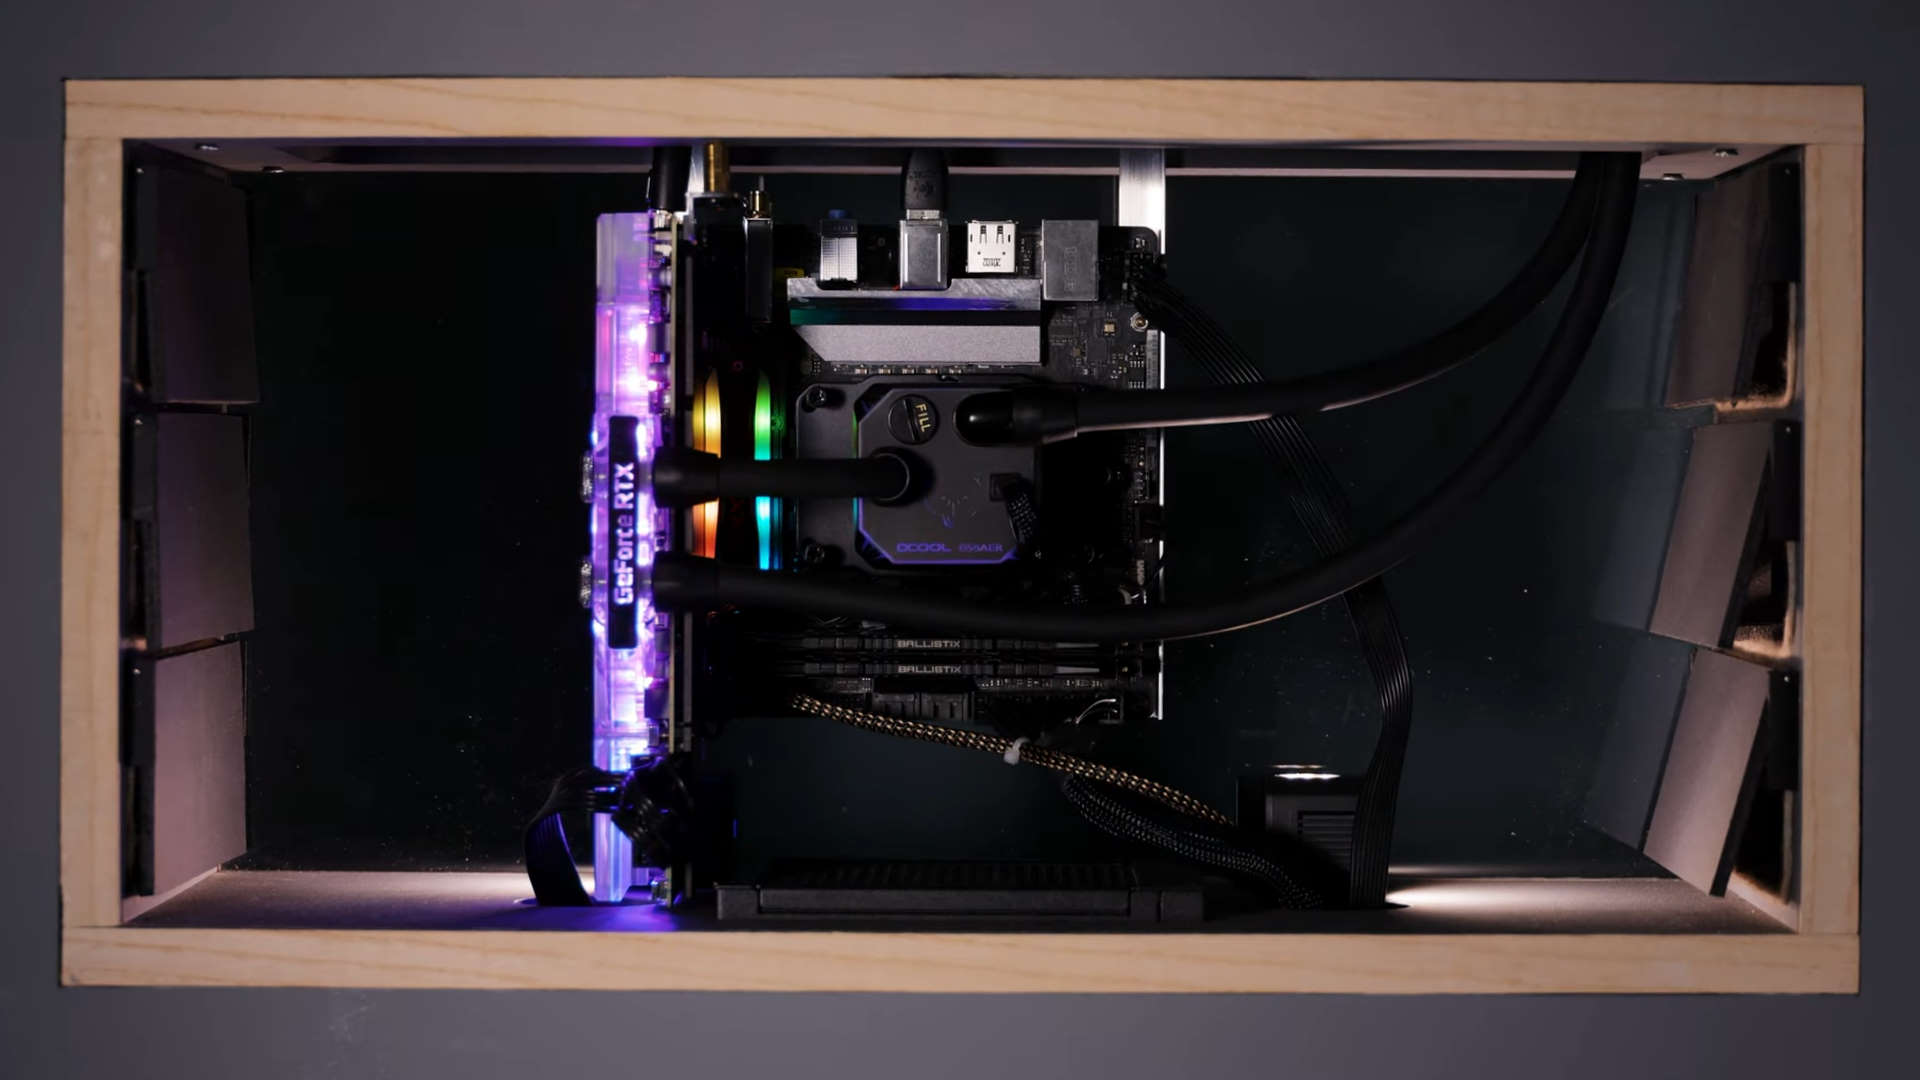 The DIY Perks breathing PC, with bellows cooling system